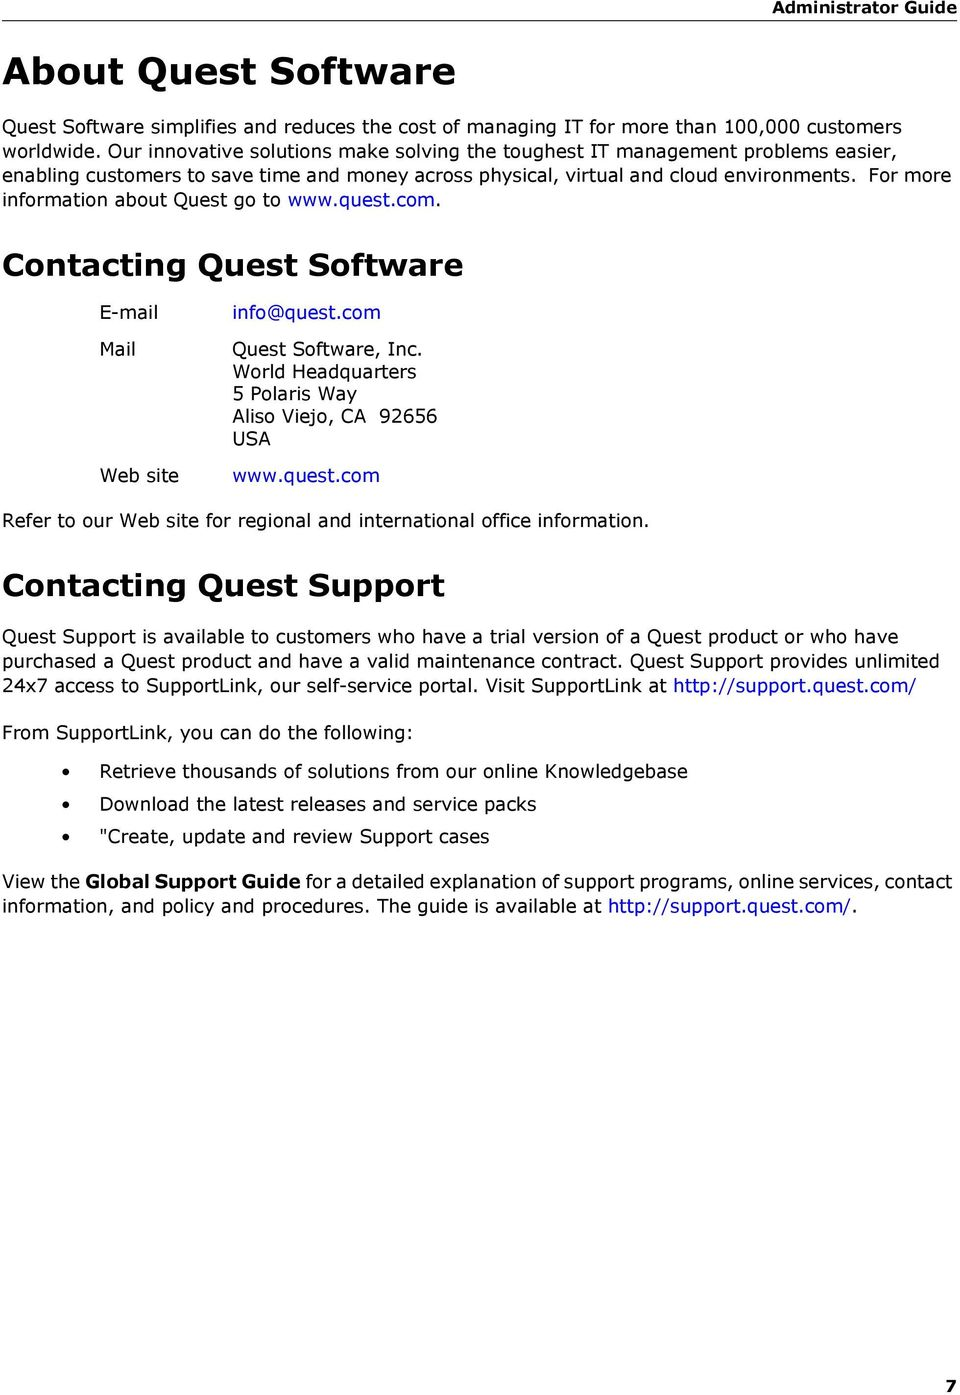 For more information about Quest go to www.quest.com. Contacting Quest Software E-mail Mail Web site info@quest.com Quest Software, Inc. World Headquarters 5 Polaris Way Aliso Viejo, CA 92656 USA www.